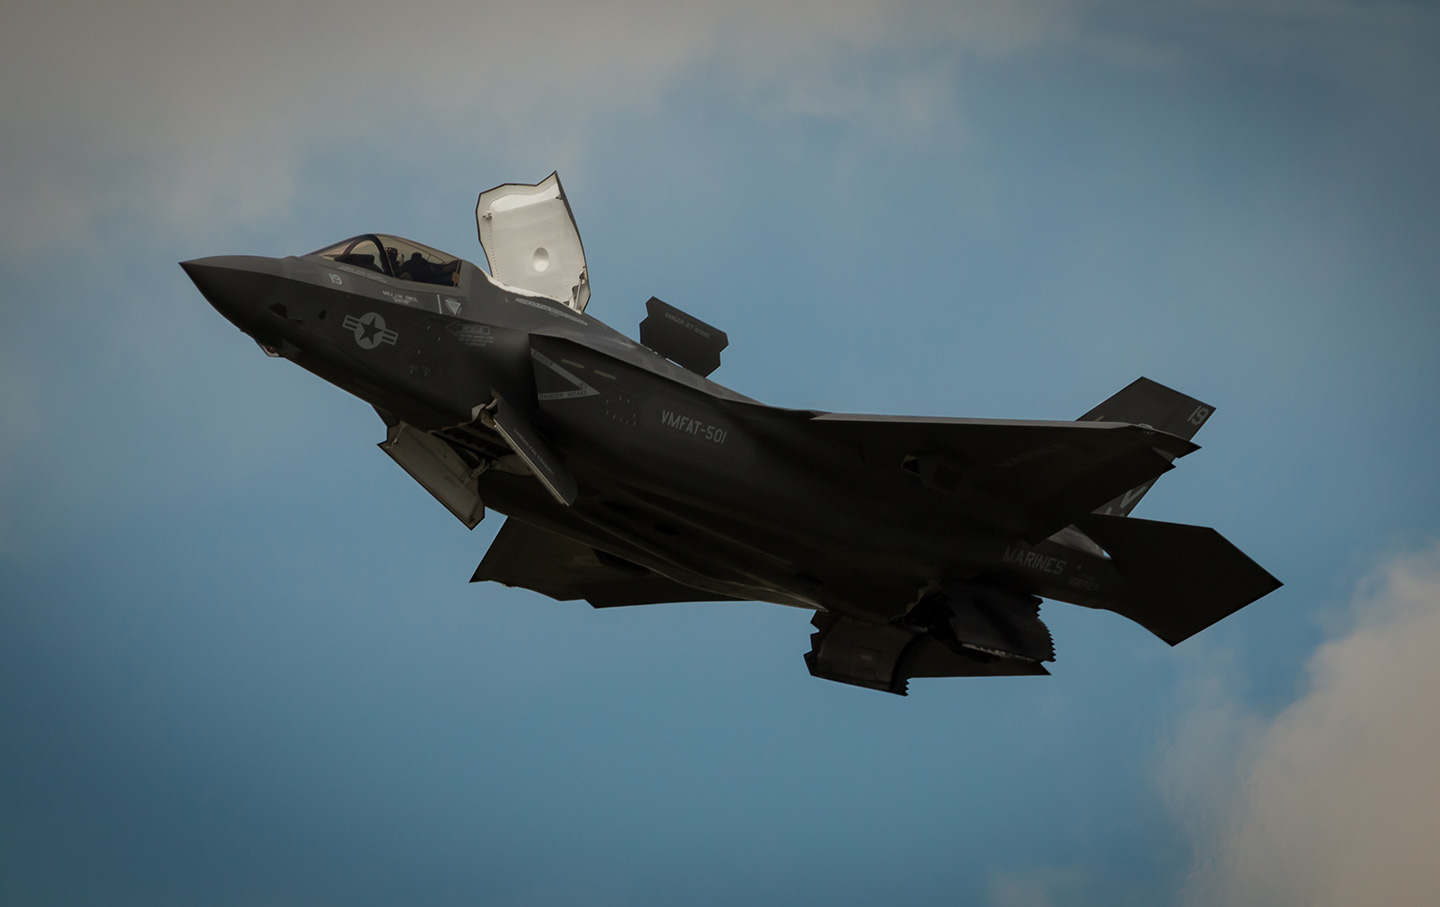 The Pentagon's $1.5 Trillion Addiction to the F-35 Fighter